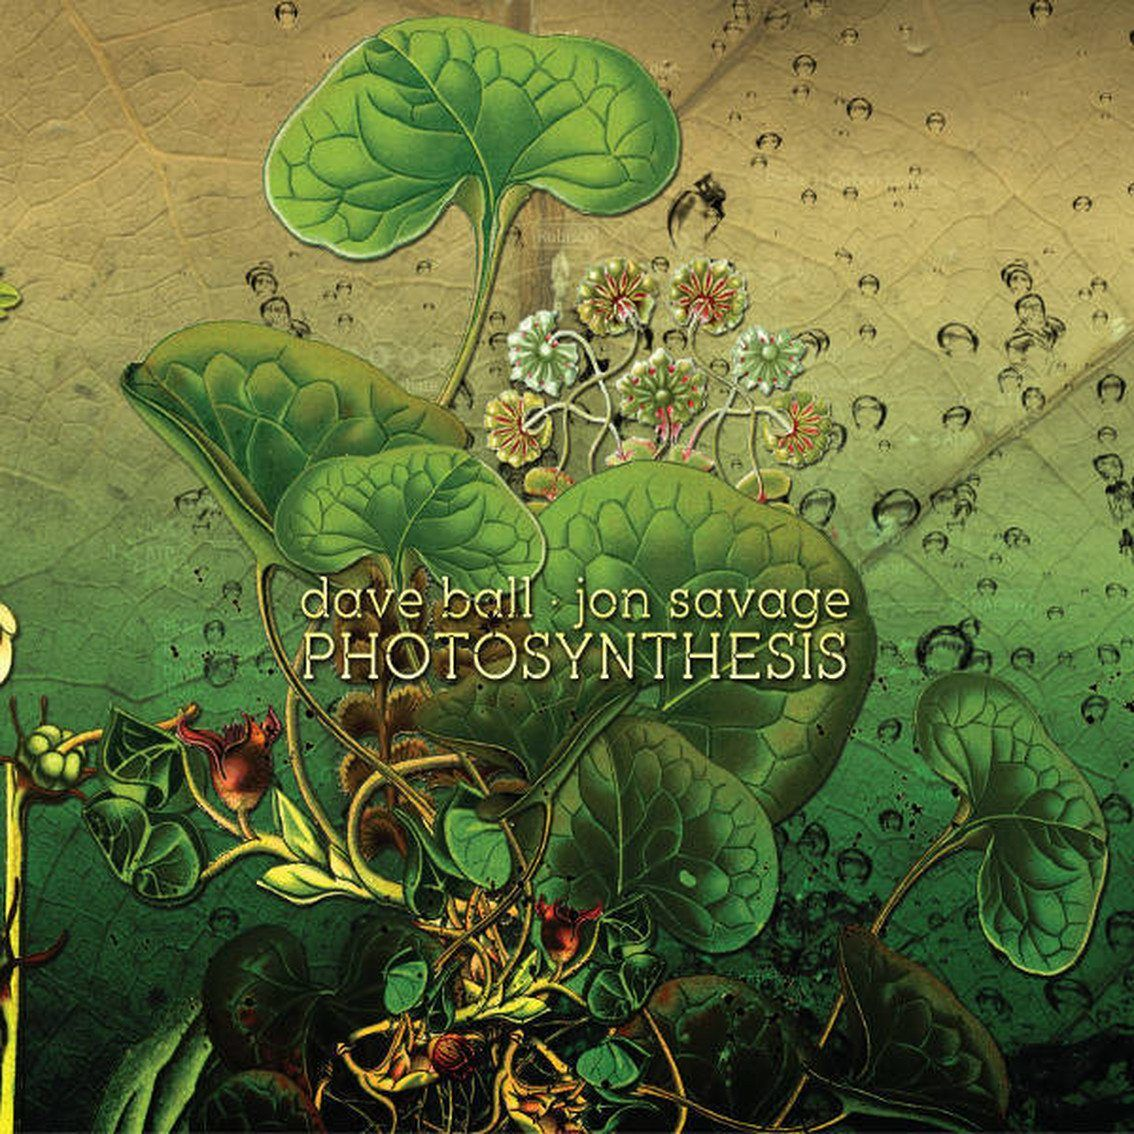 Dave Ball (Soft Cell) and Jon Savage release soundscape album'Photosynthesis'